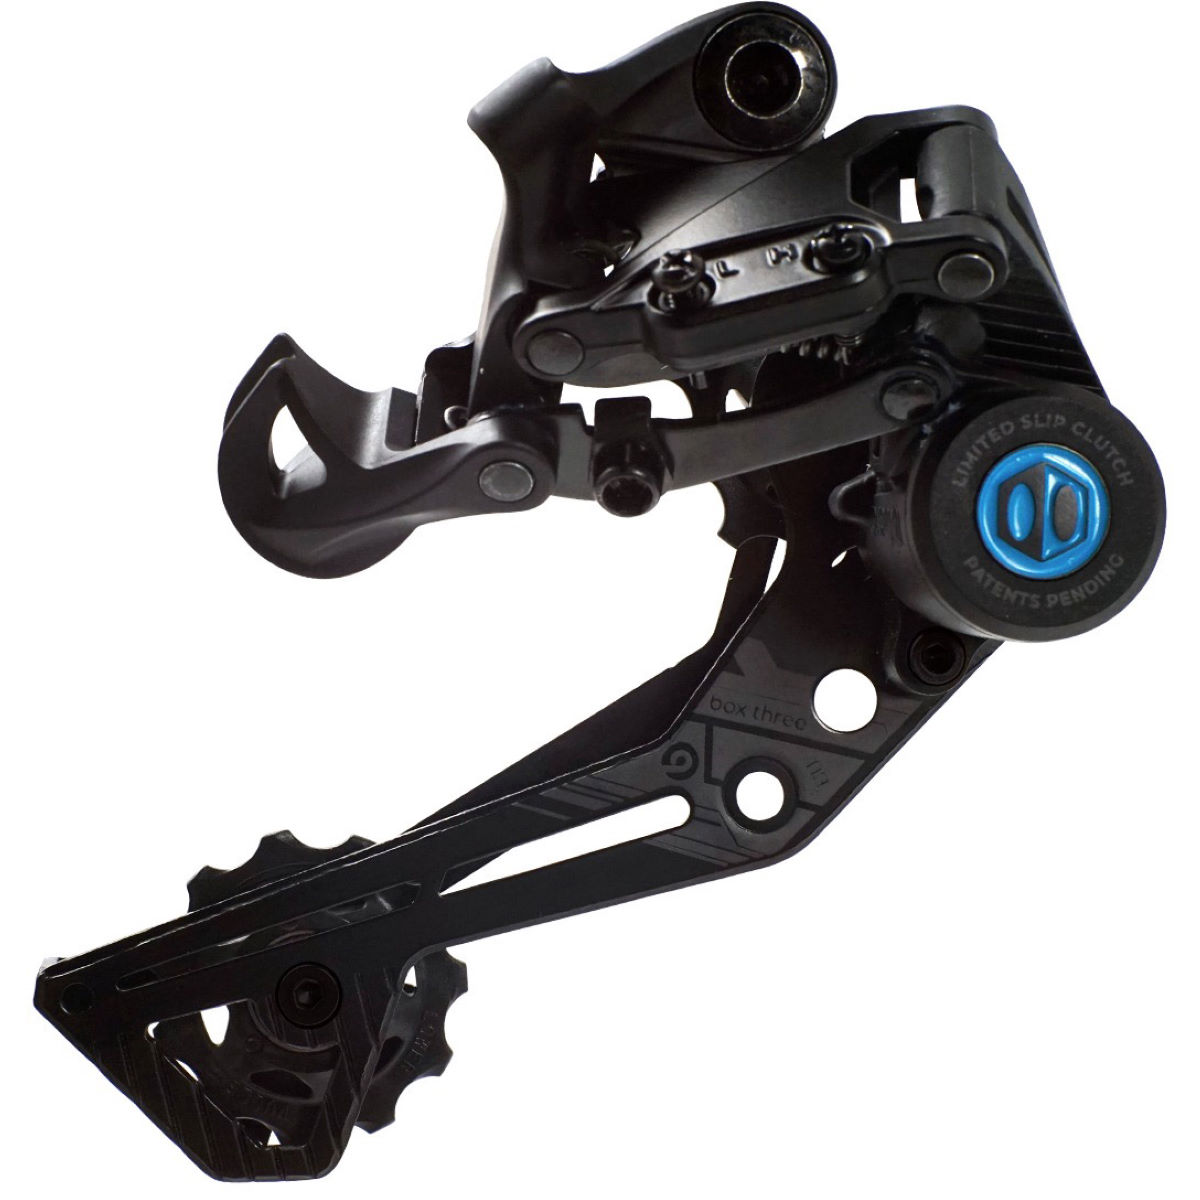 Box Three Prime 9 Speed Rear Derailleur - X-wide Black